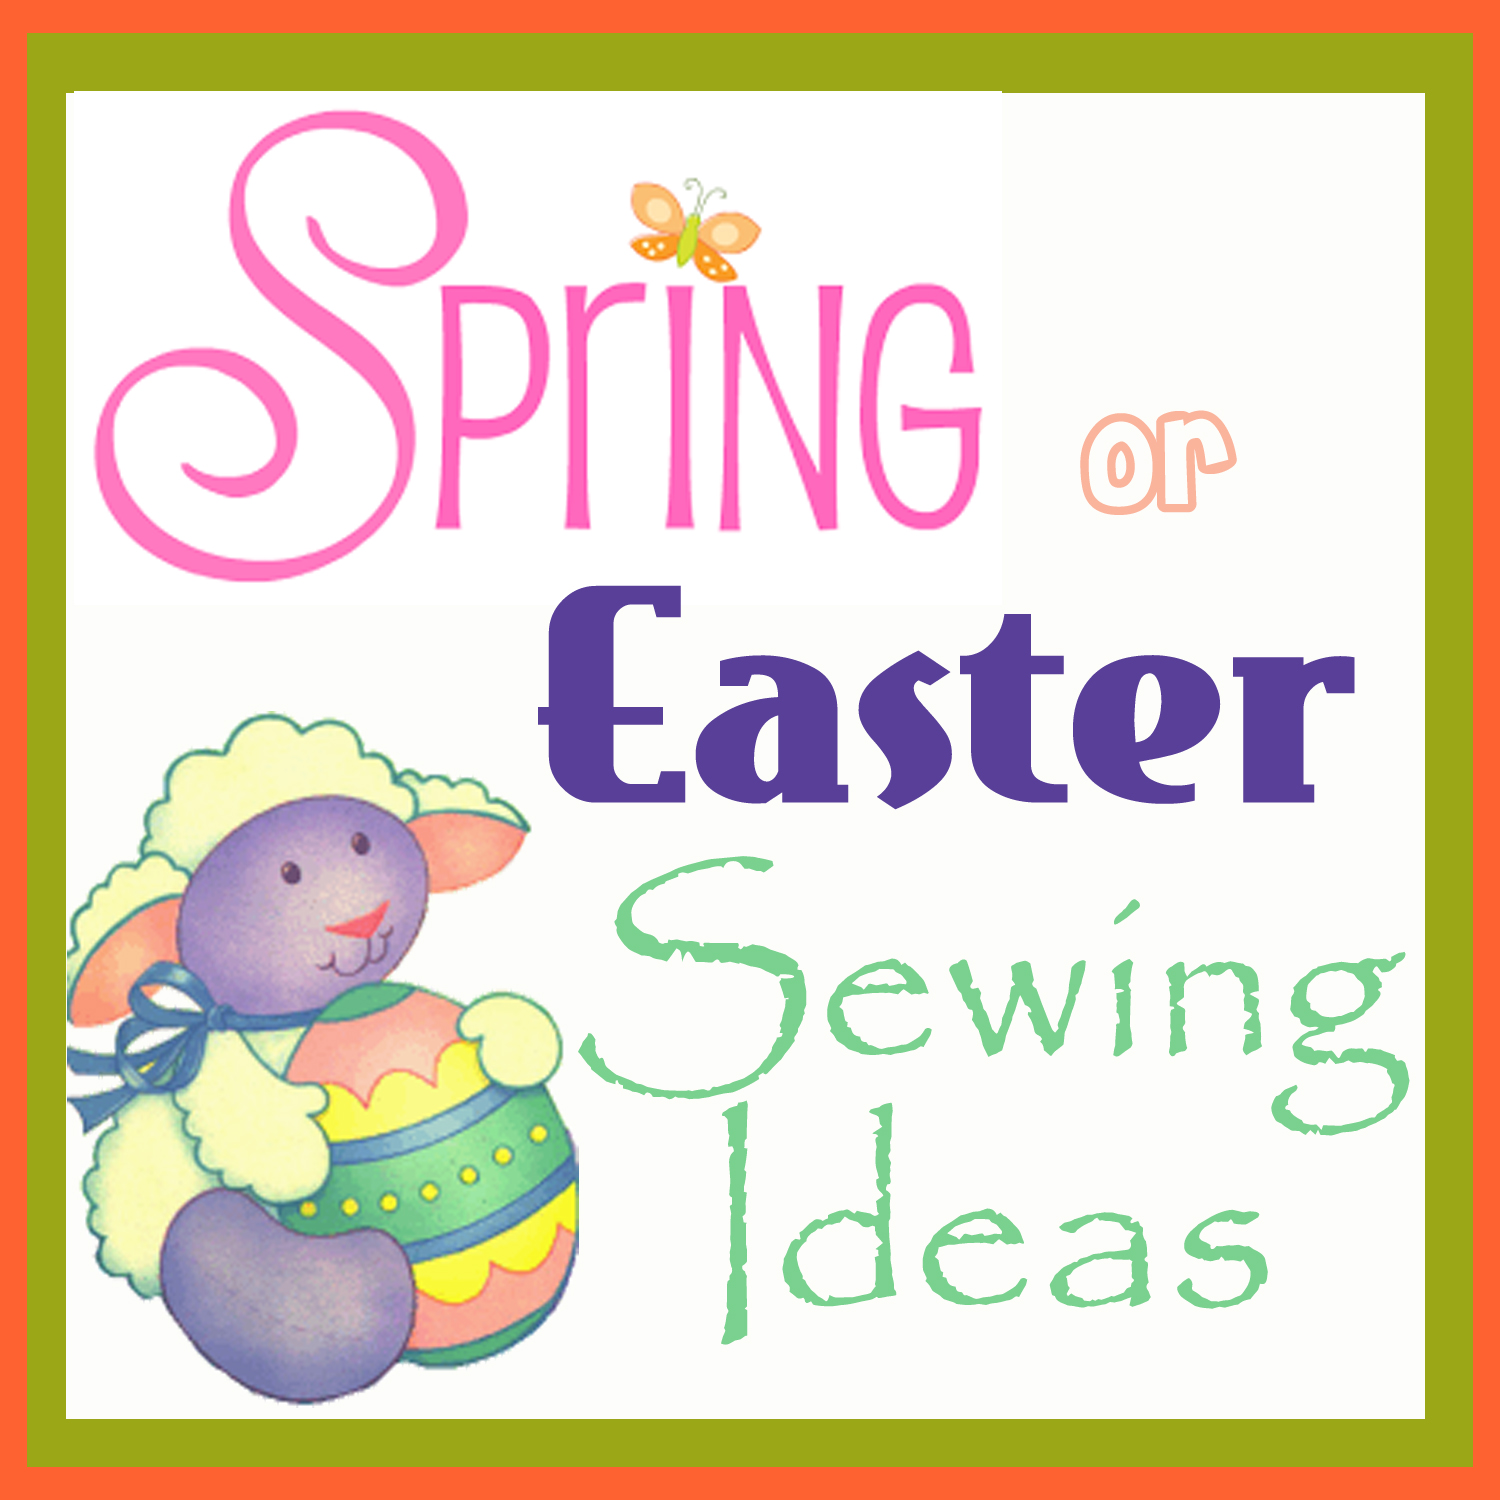 50 spring and easter sewing ideas so sew easy so sew easy cute spring and easter sewing project ideas negle Images